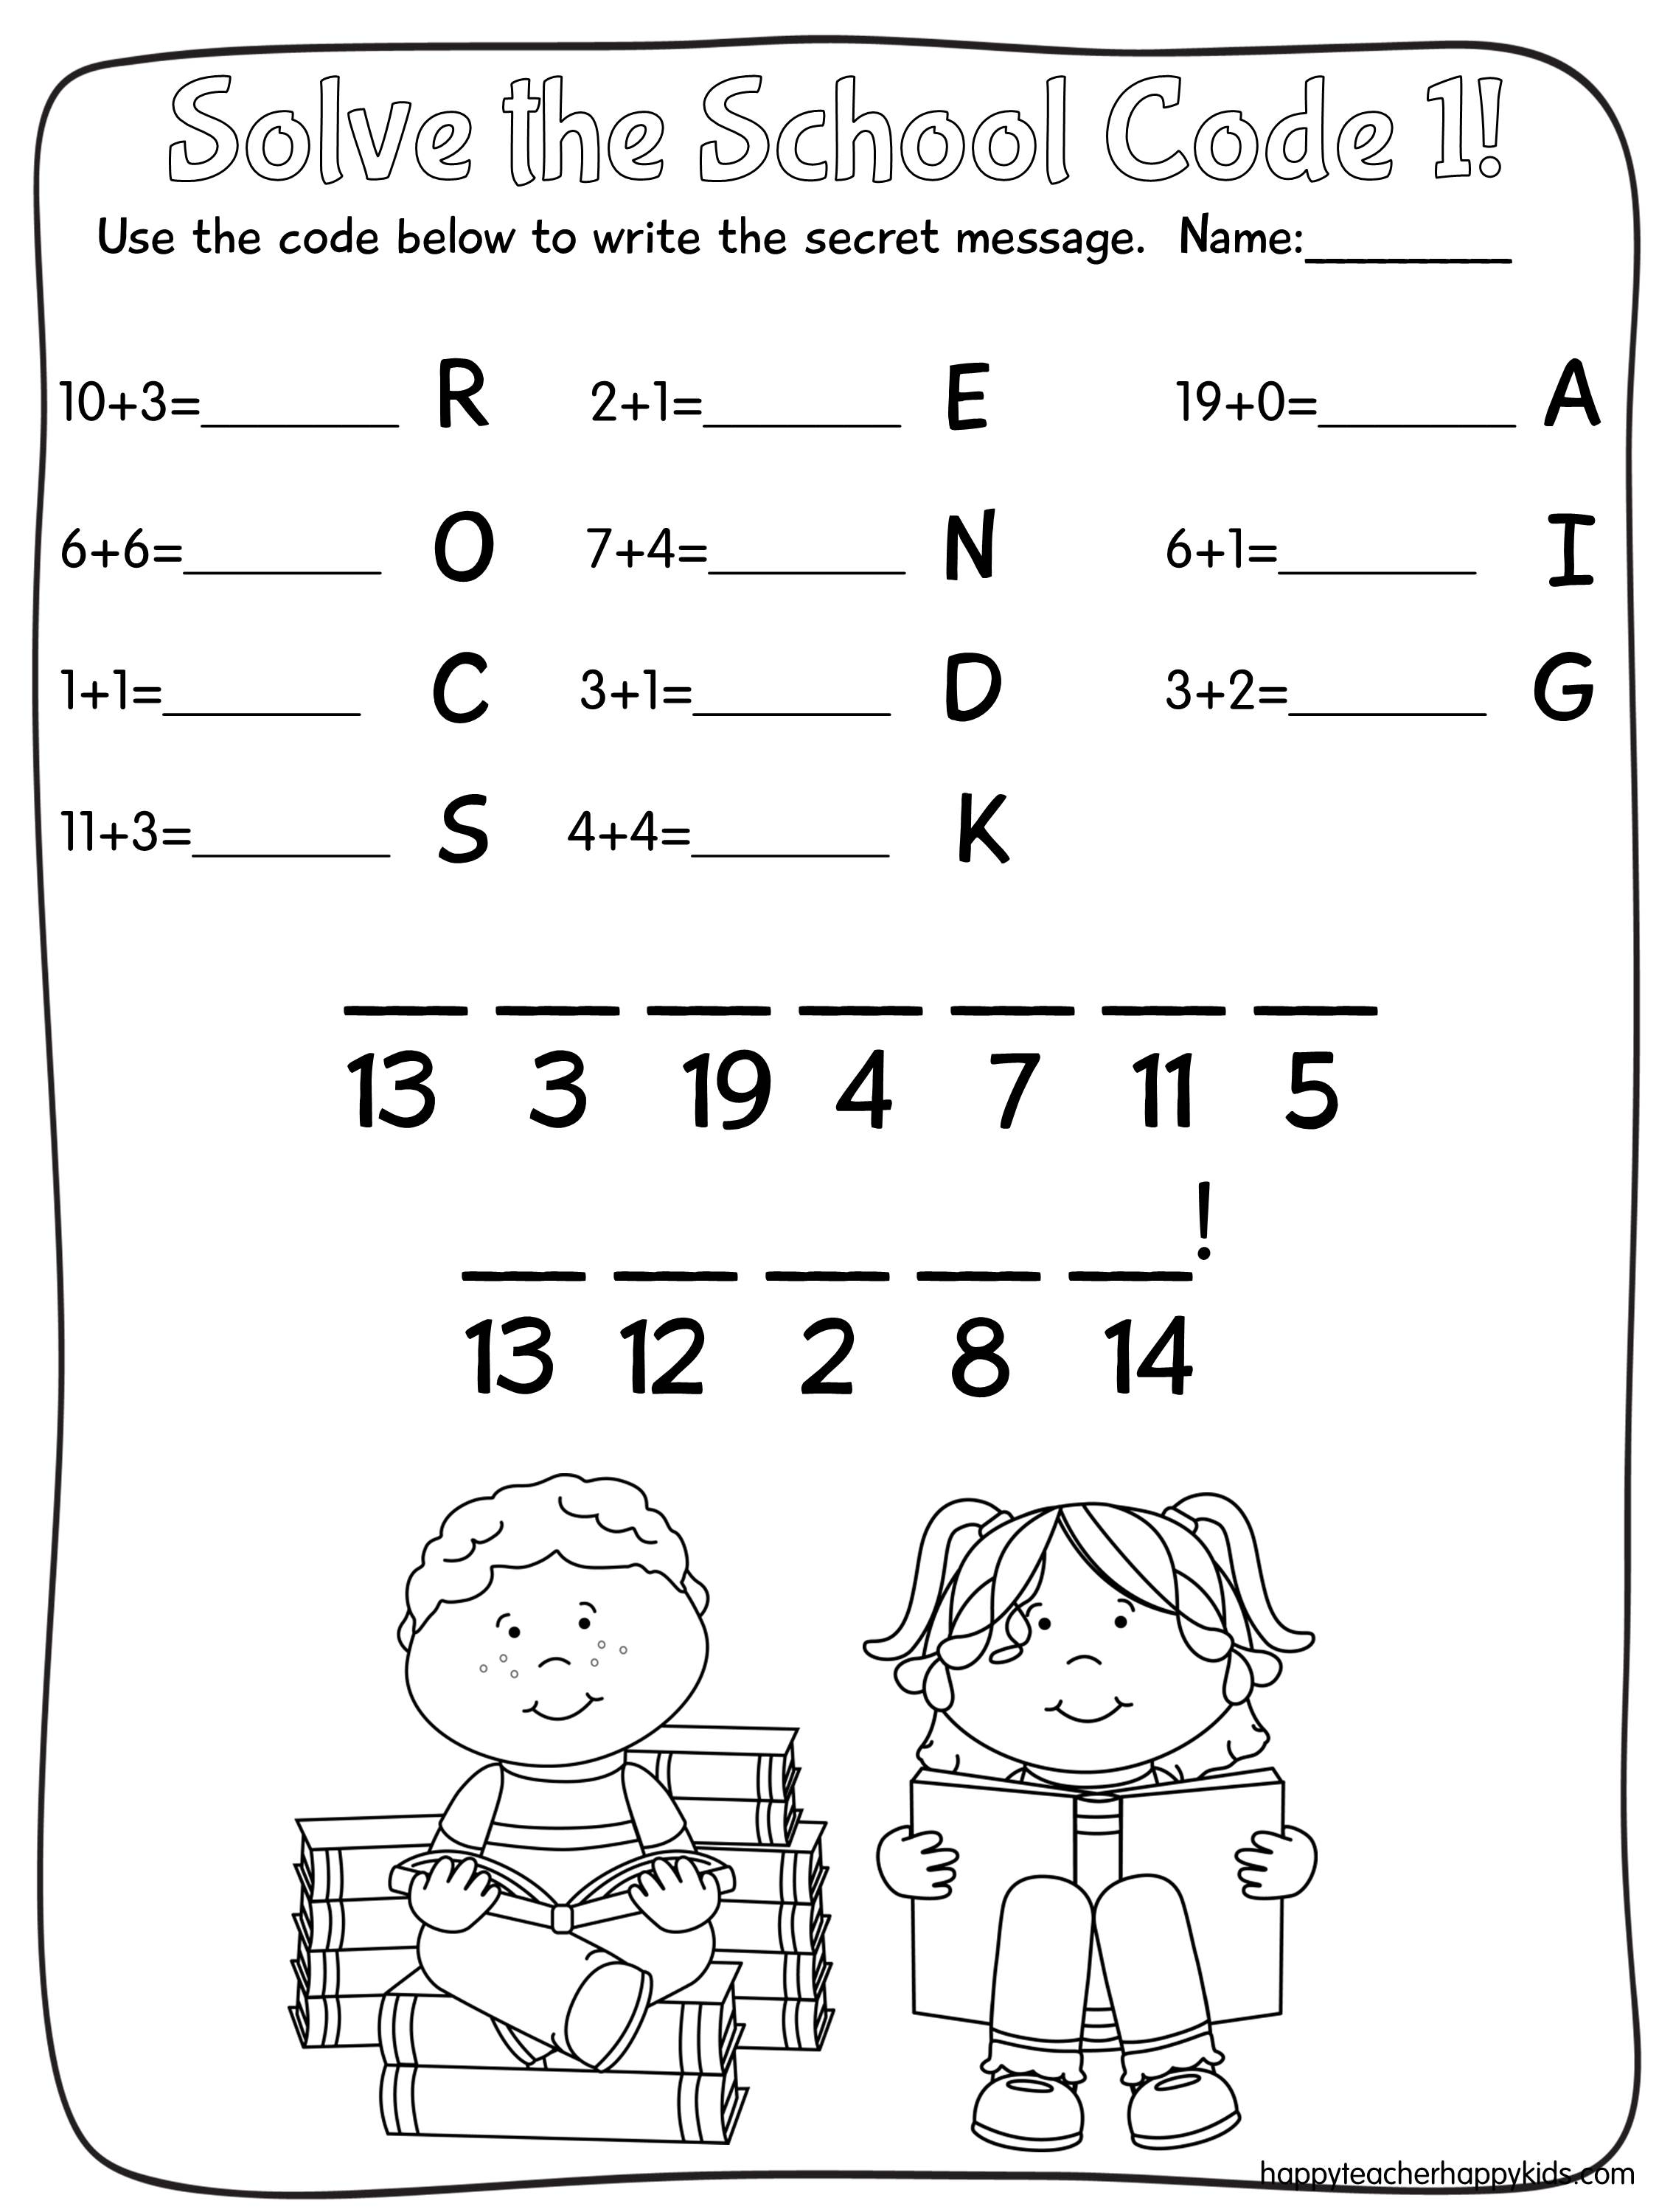 Free Back To School Math Codes